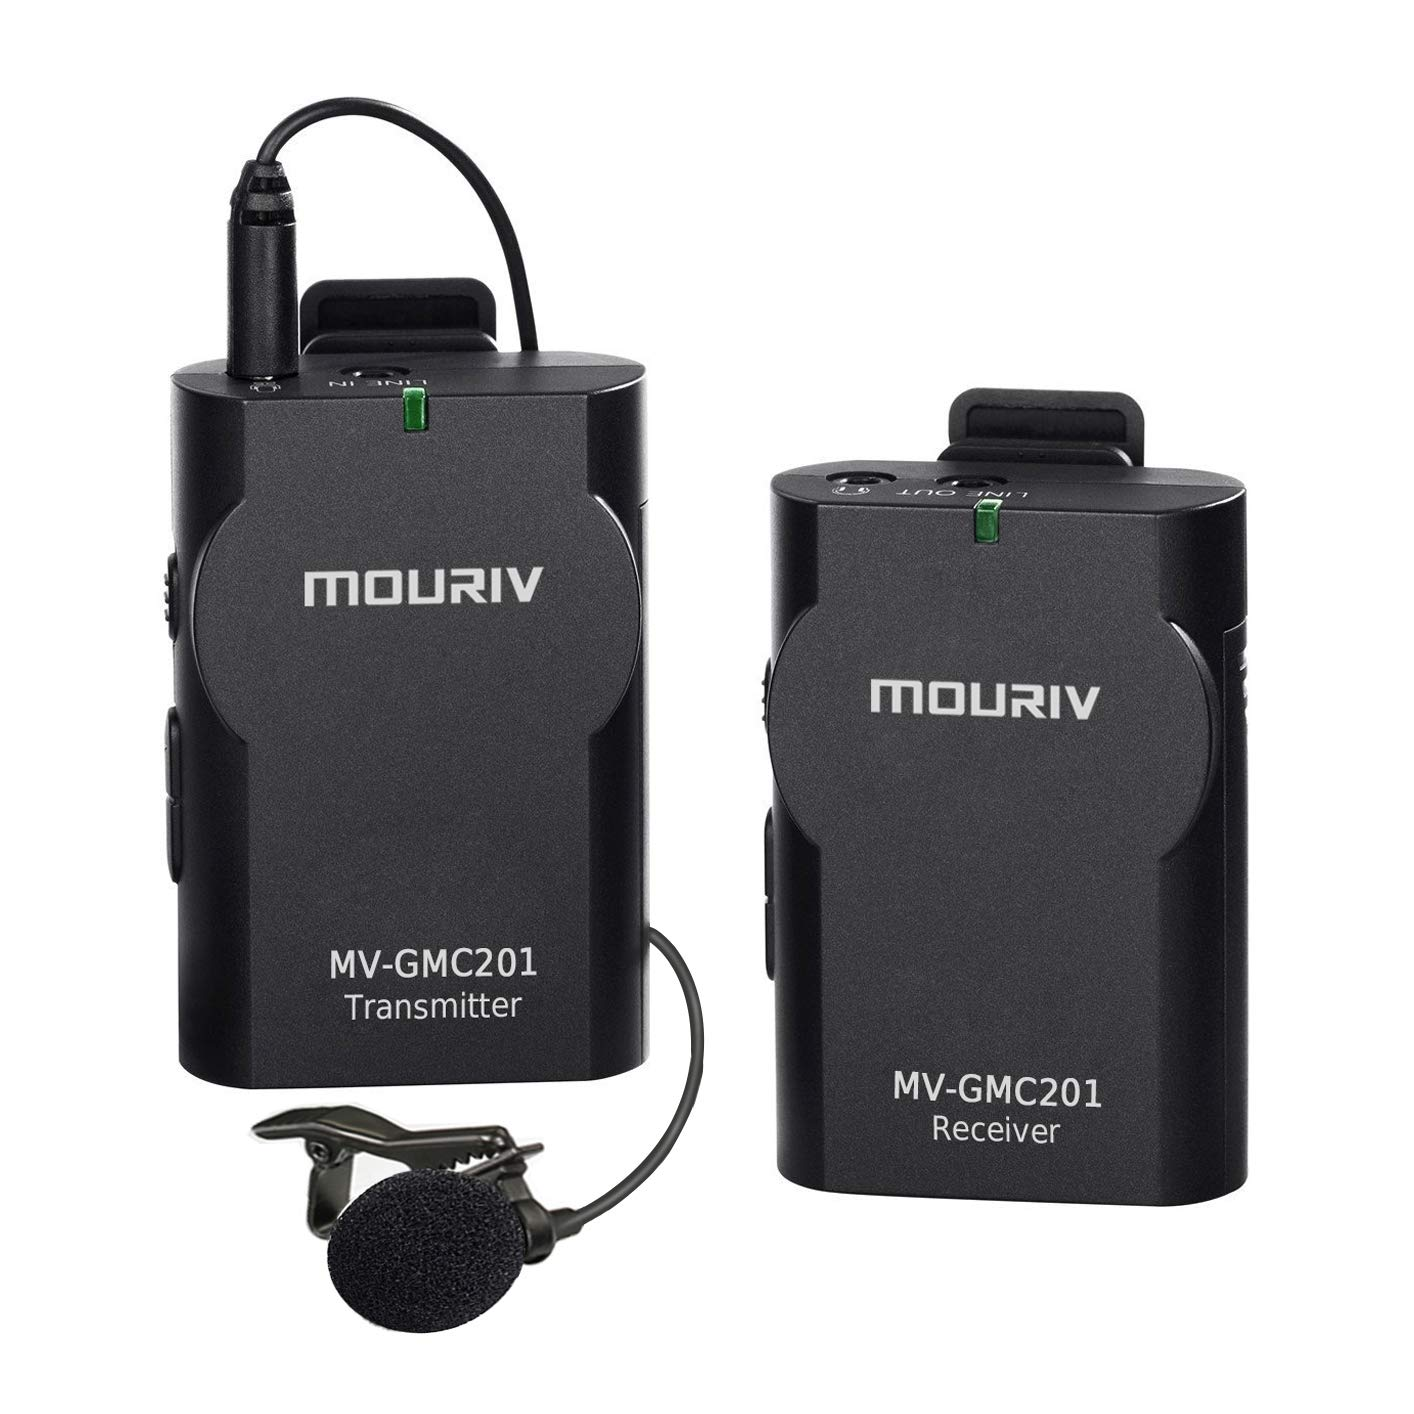 Newest MOURIV MV-GMC201 Universal Lavalier Wireless Microphone Mic with Real-time Monitor for DSLR Camera, Camcorder, IOS Smartphone Tablet Gopro 4332801727